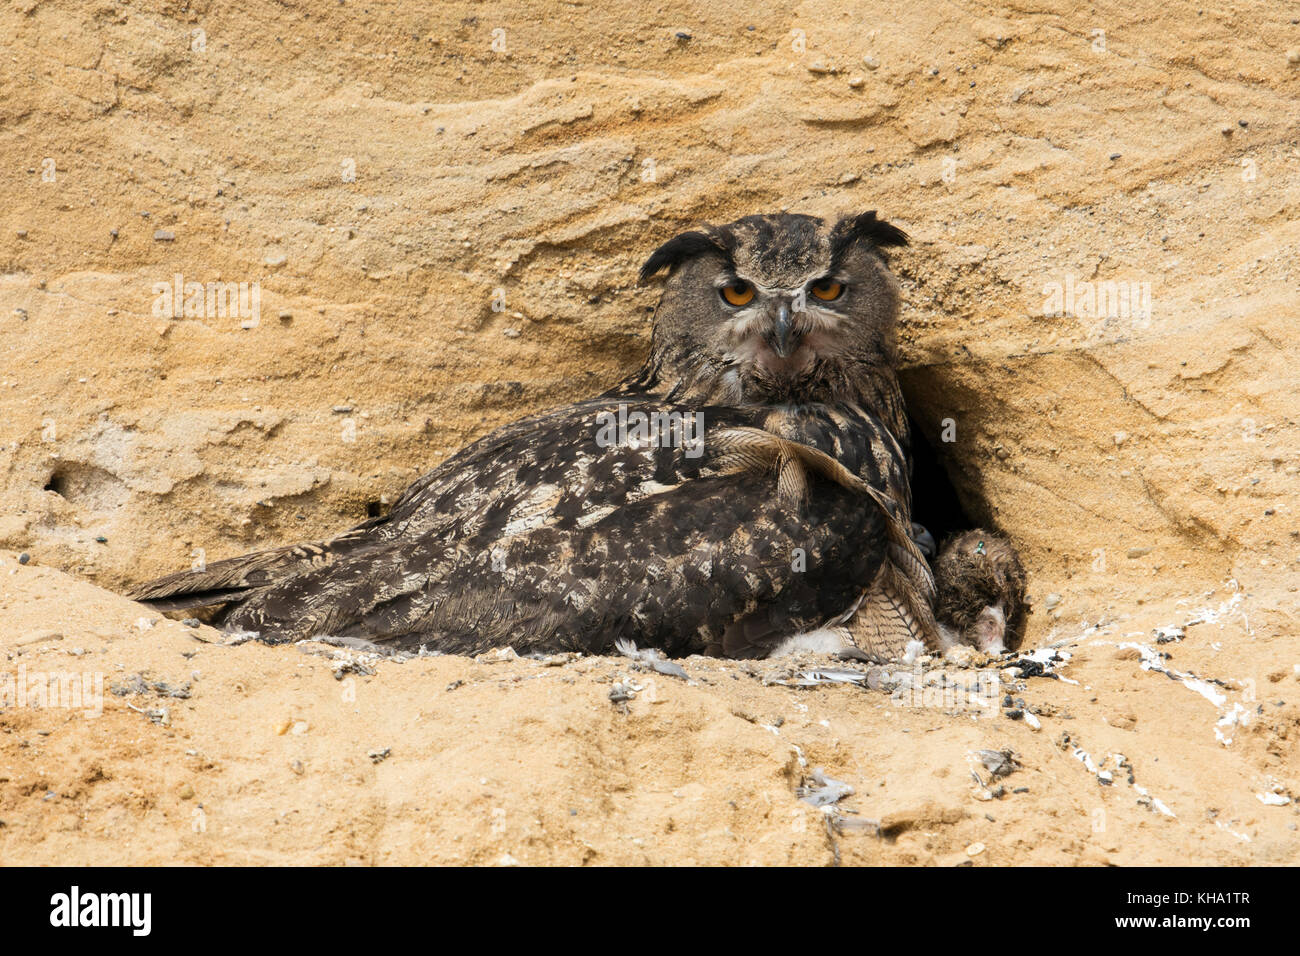 Eurasian Eagle Owl ( Bubo bubo ) at its breeding site in a sand pit, adult hatching and gathering its chicks, wildlife, - Stock Image